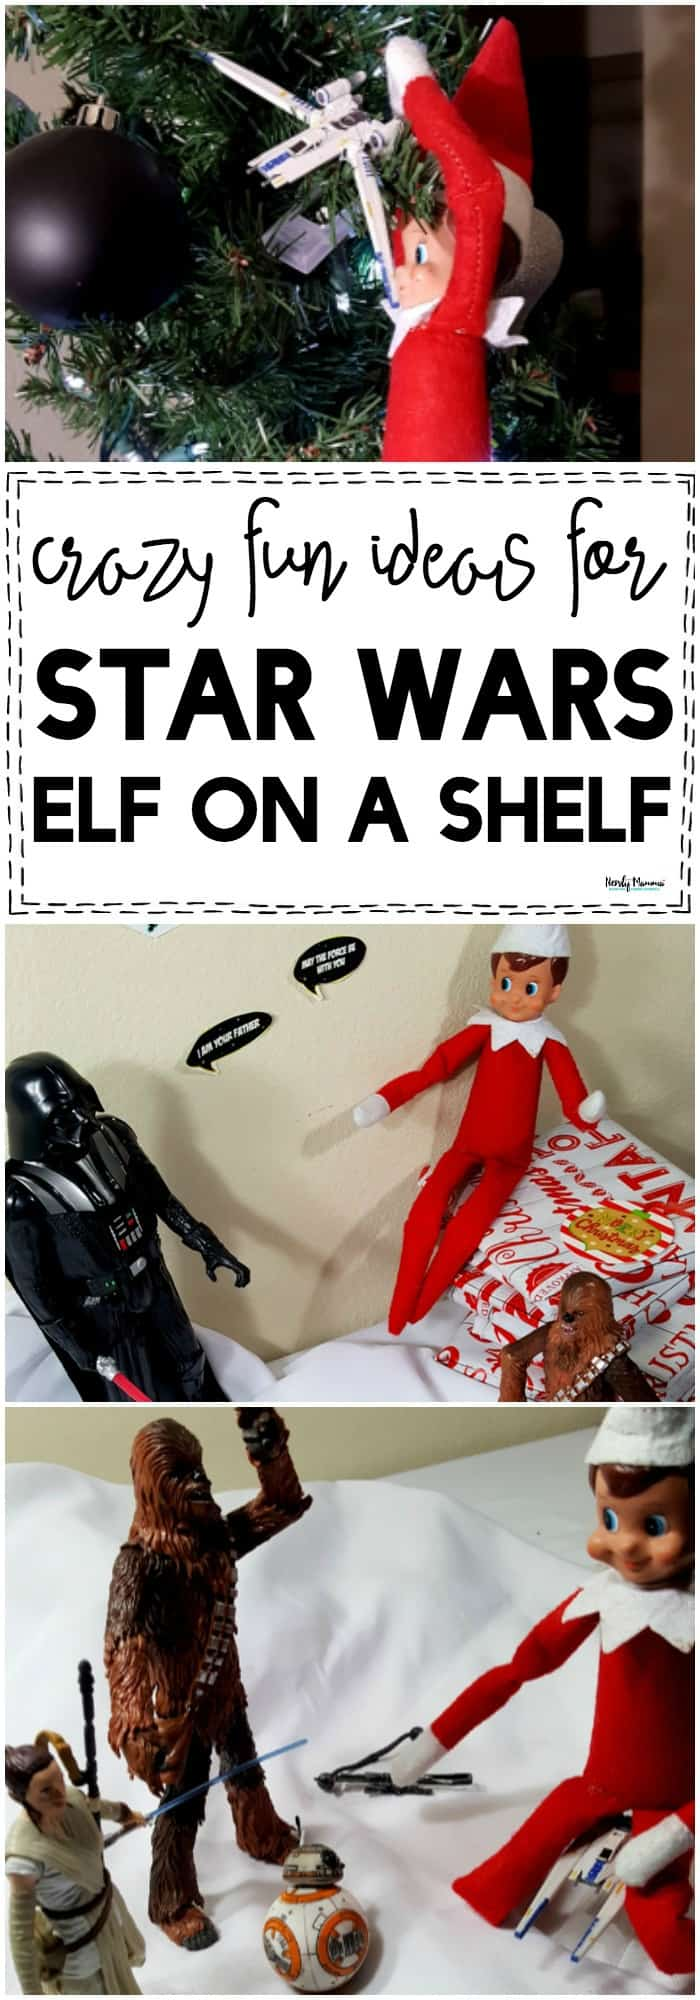 You've GOT to check out these super adorable Star Wars Elf on a Shelf ideas! #StarWars #ElfonaShelf #Christmas #KidsActivities #Activities #ElfIdeas #ElfonaShelfIdeas